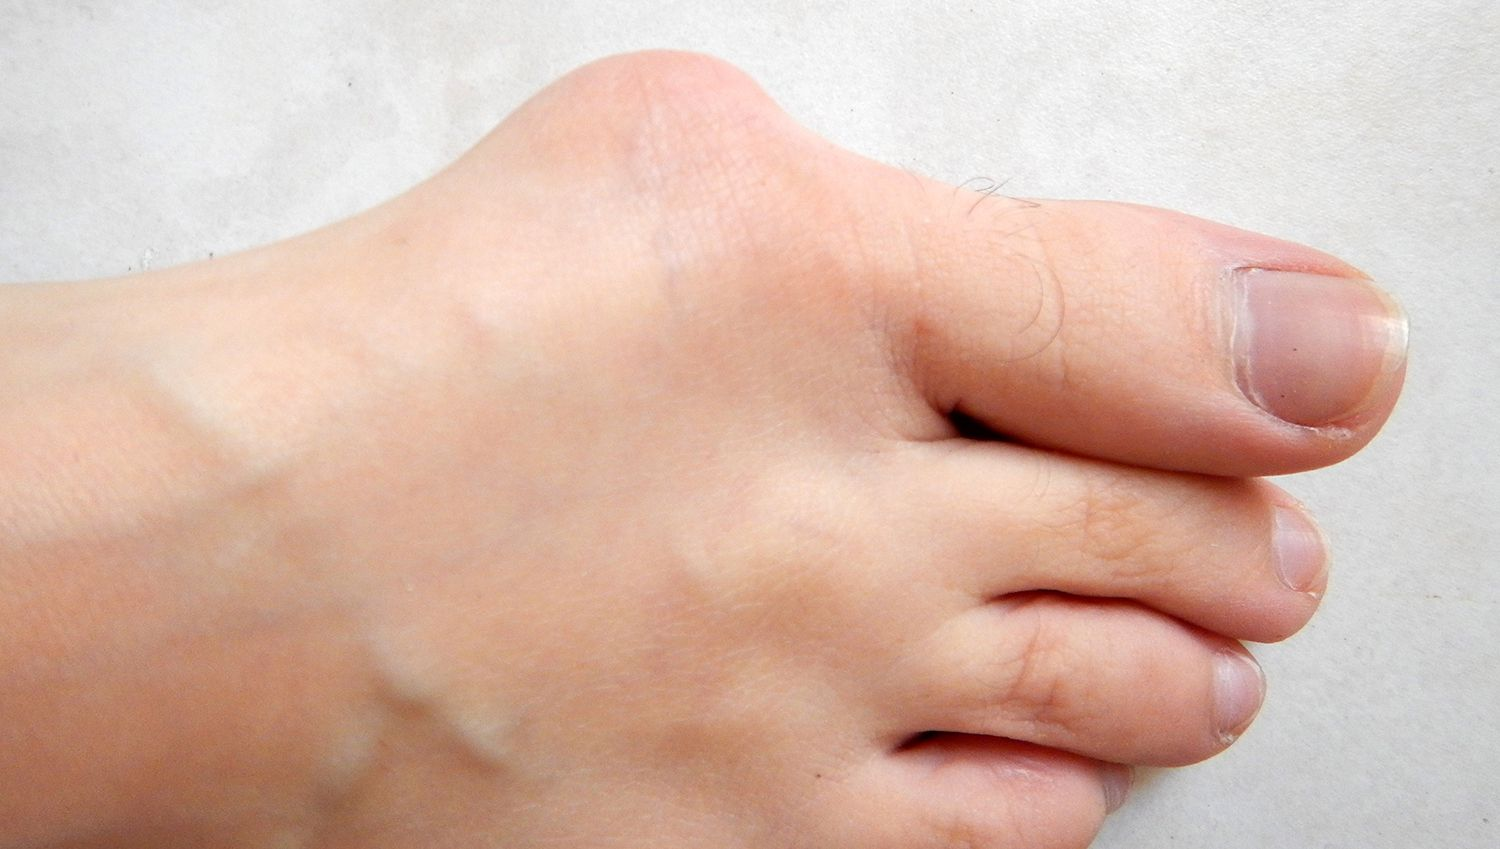 What Does a Bunion Look Like?